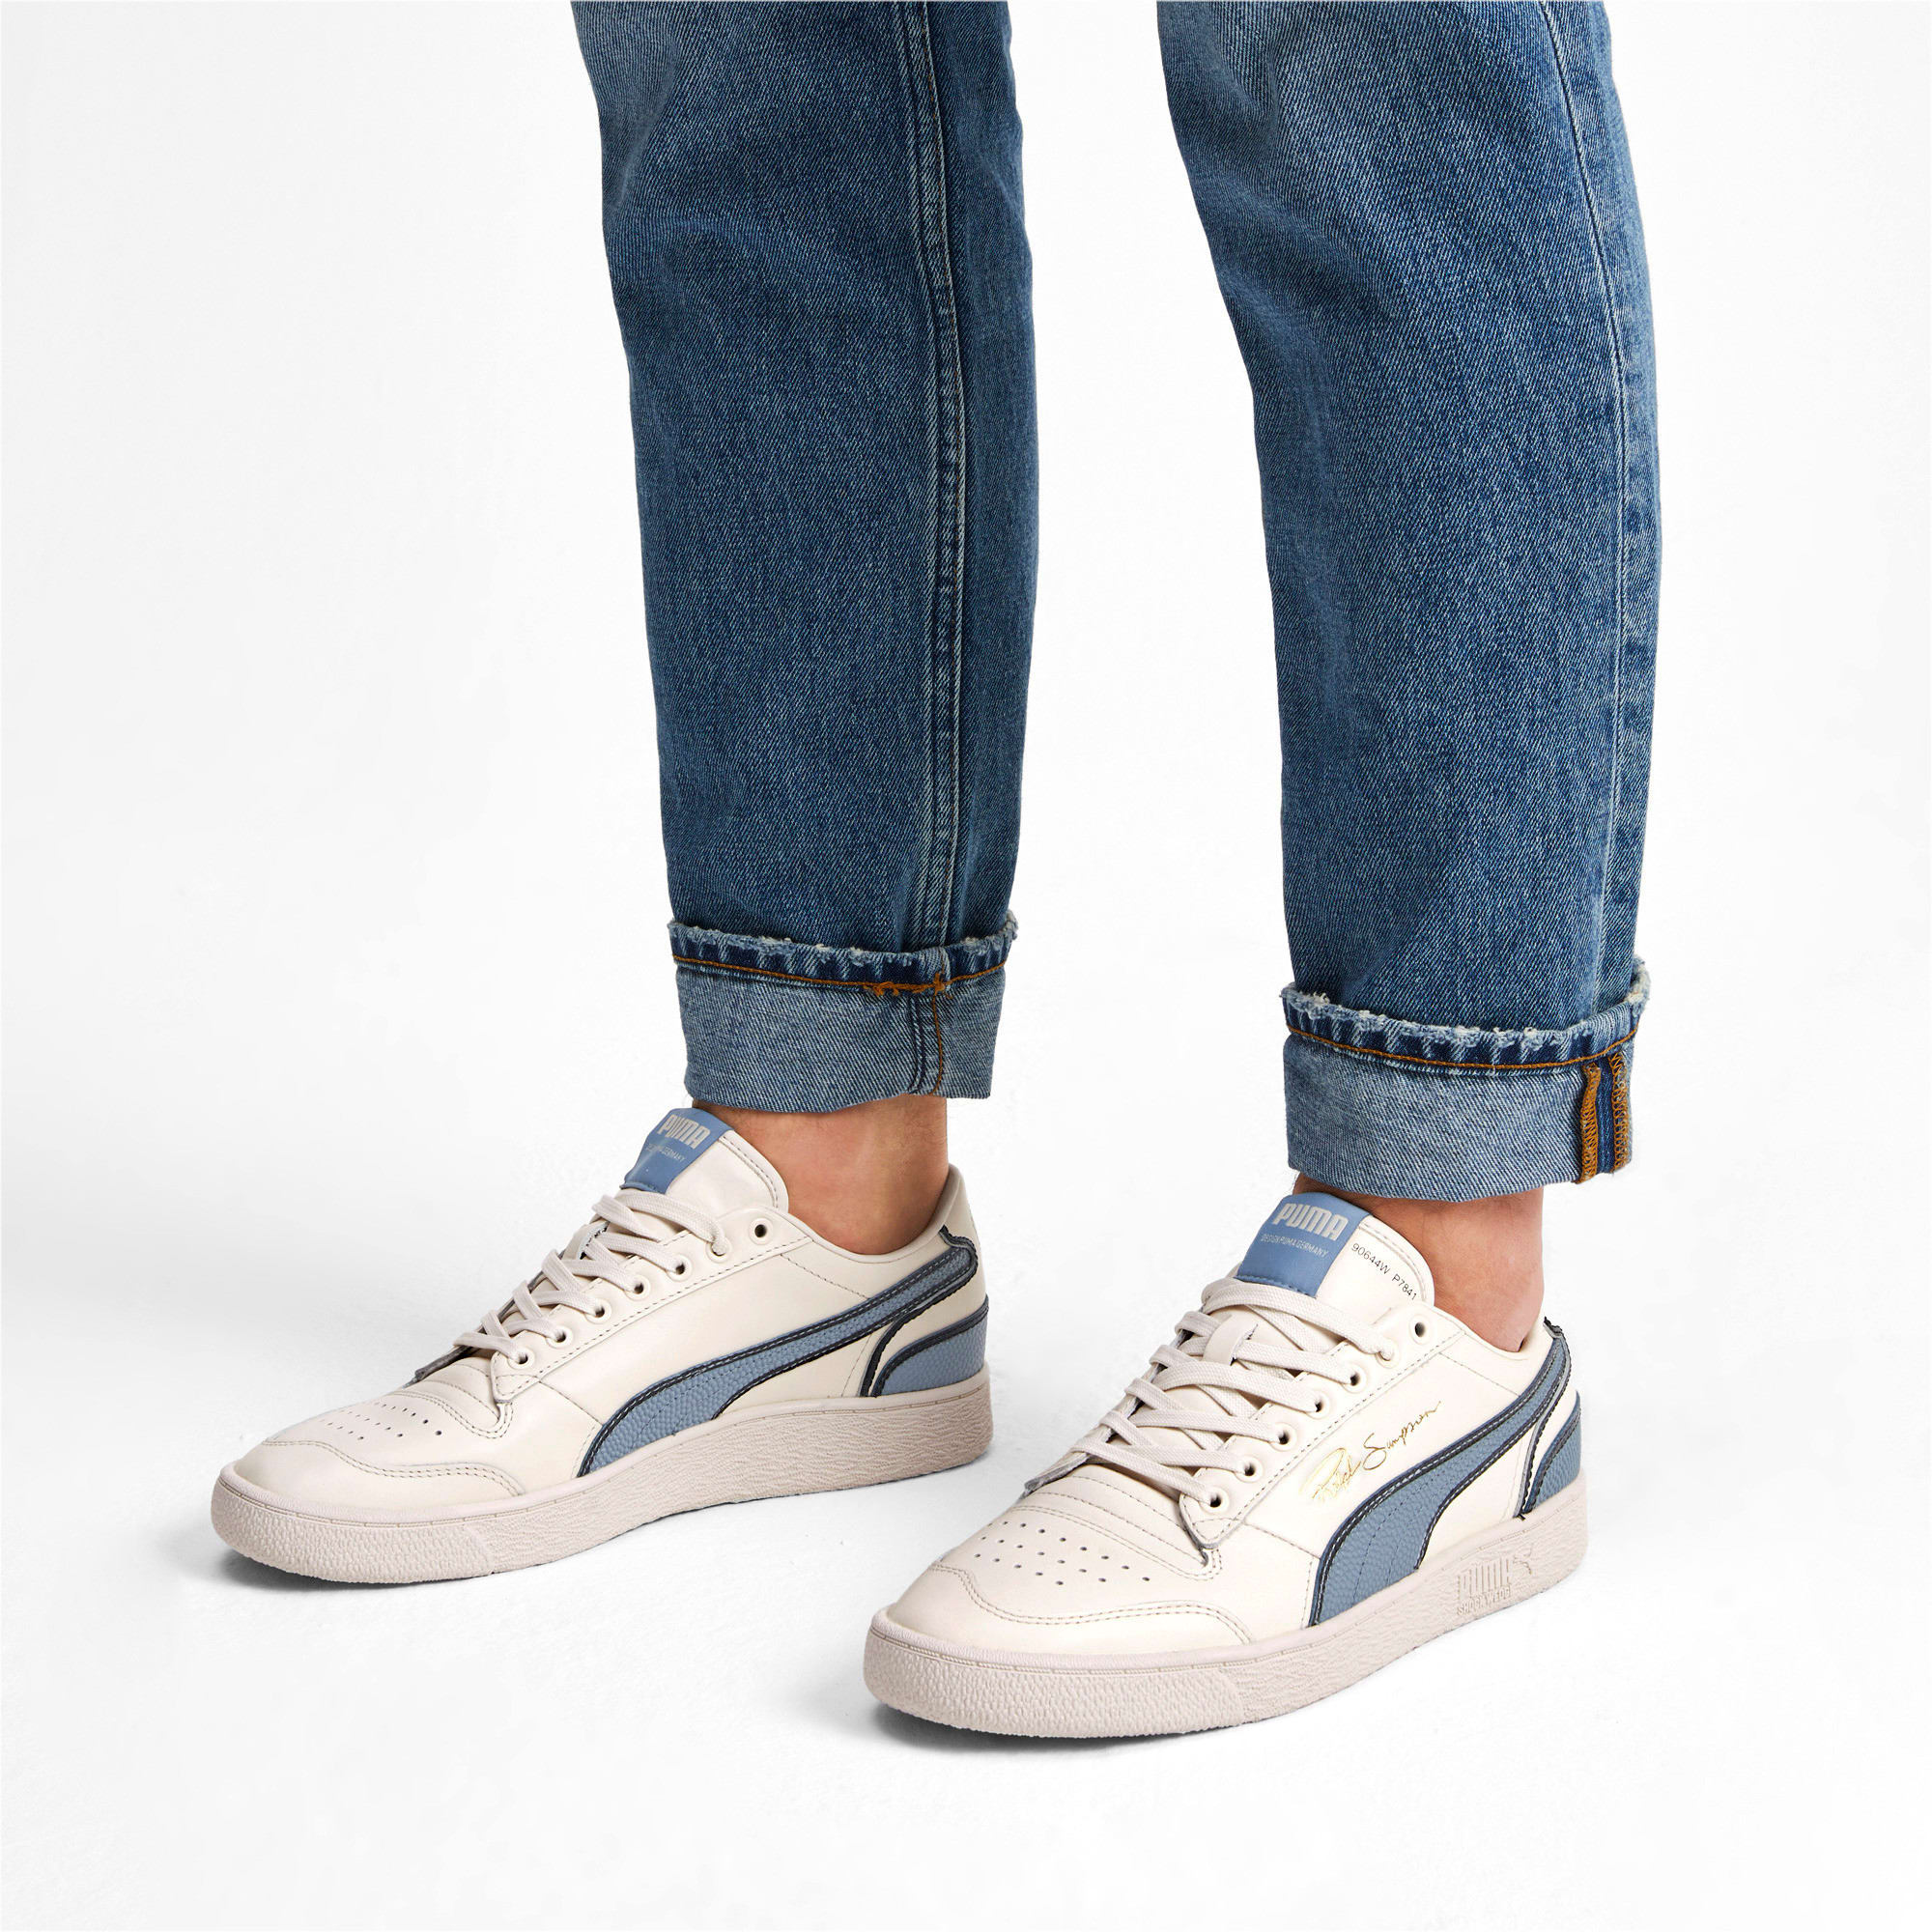 Thumbnail 3 of Ralph Sampson Lo Hoops Trainers, Pastel-Faded Denim-Pastel, medium-IND